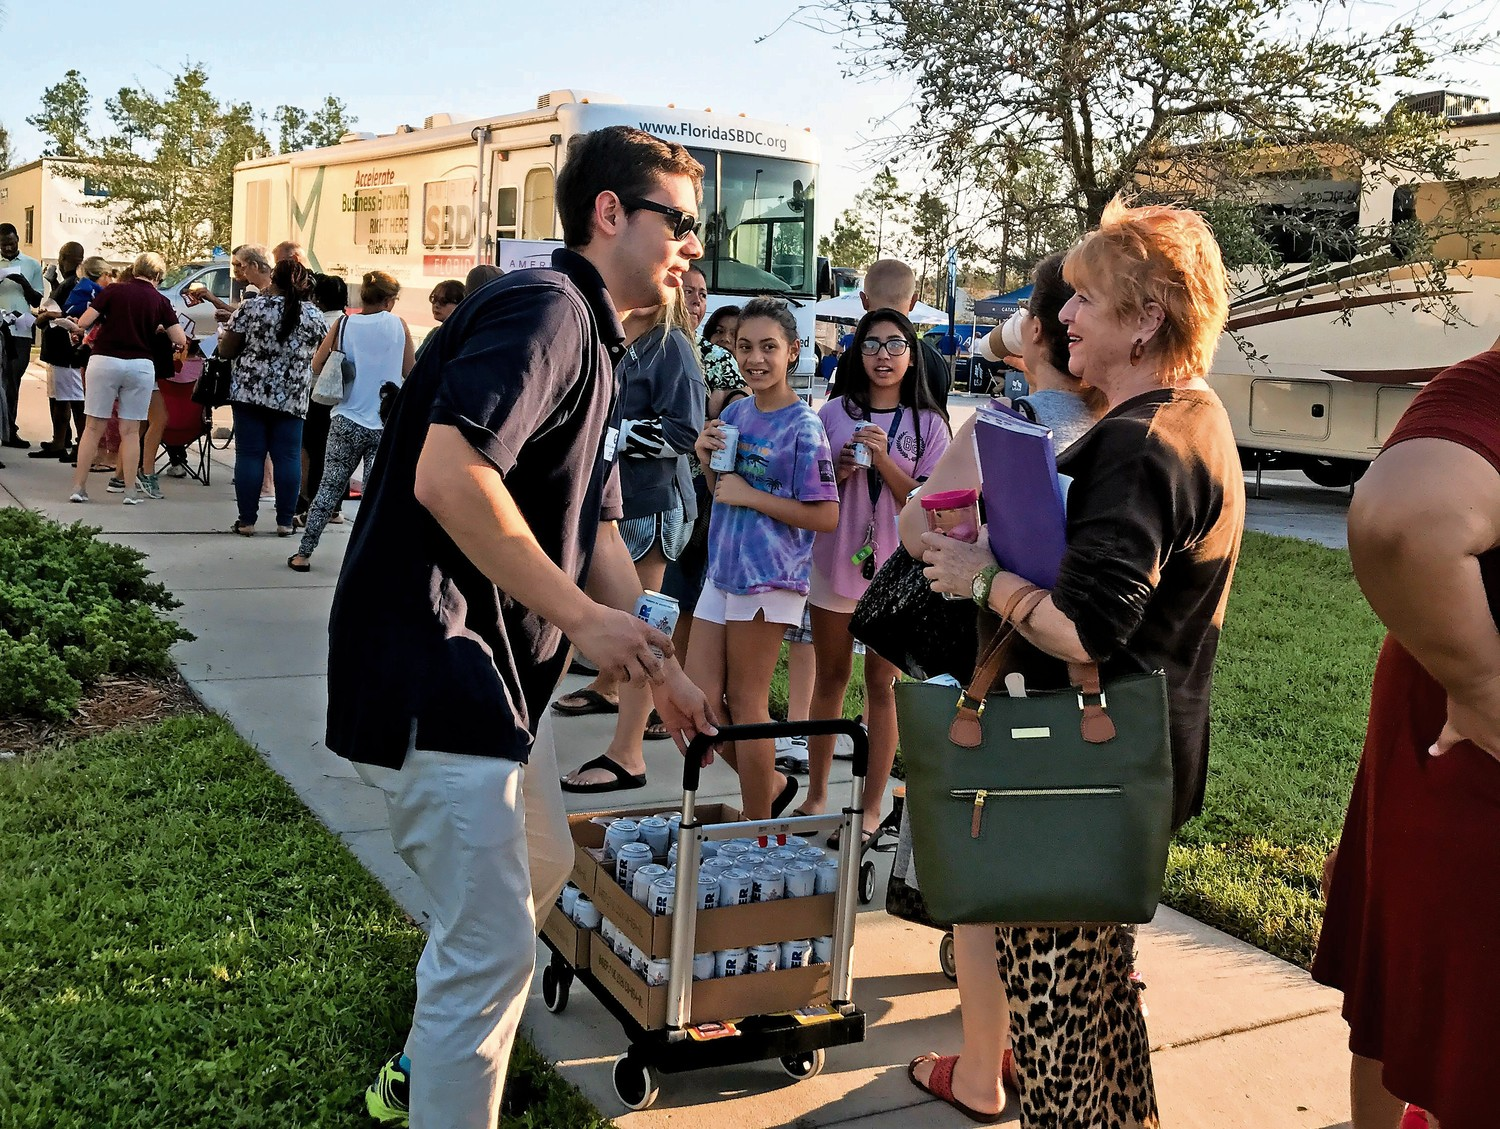 Anthony Cruz distributes cans of water during a hurricane recovery operation in Florida in September last year. Cruz is the deputy press secretary for U.S. Sen. Marco Rubio, and is a graduate of the David A. Stein Riverdale/Kingsbridge Academy.